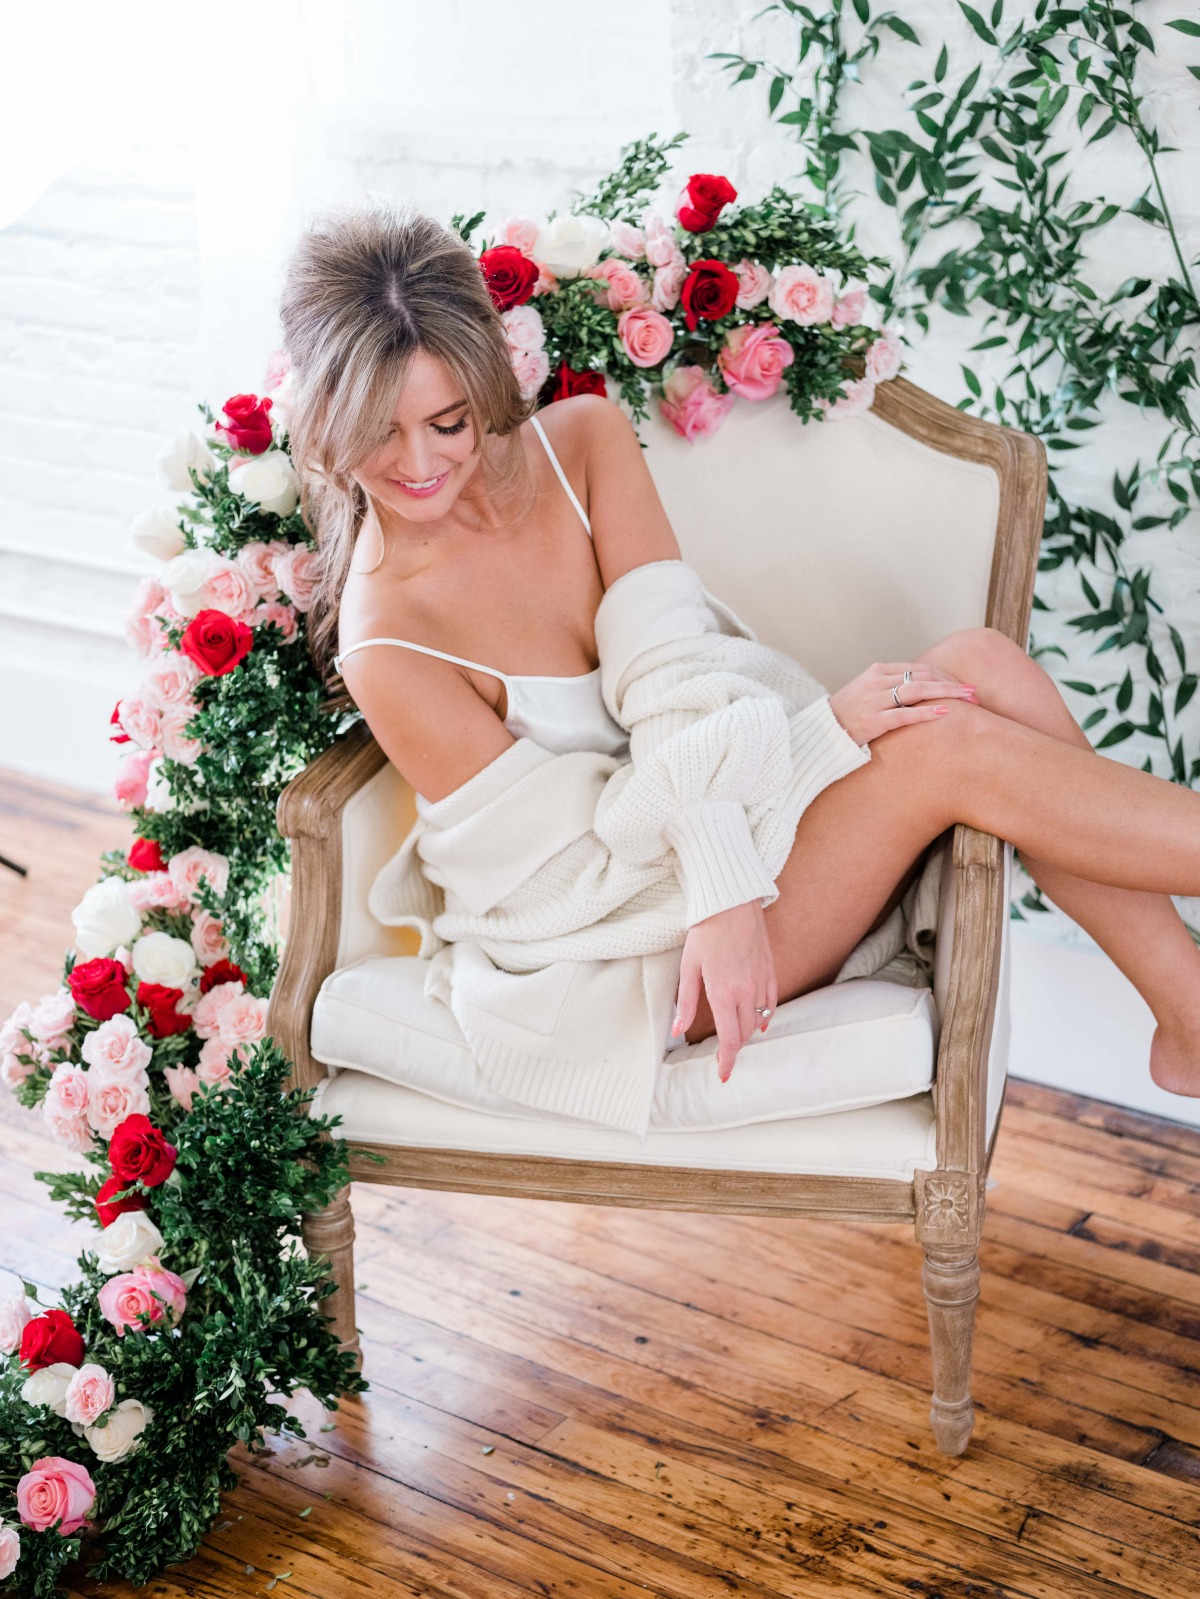 Boudoir session for Valentine's day